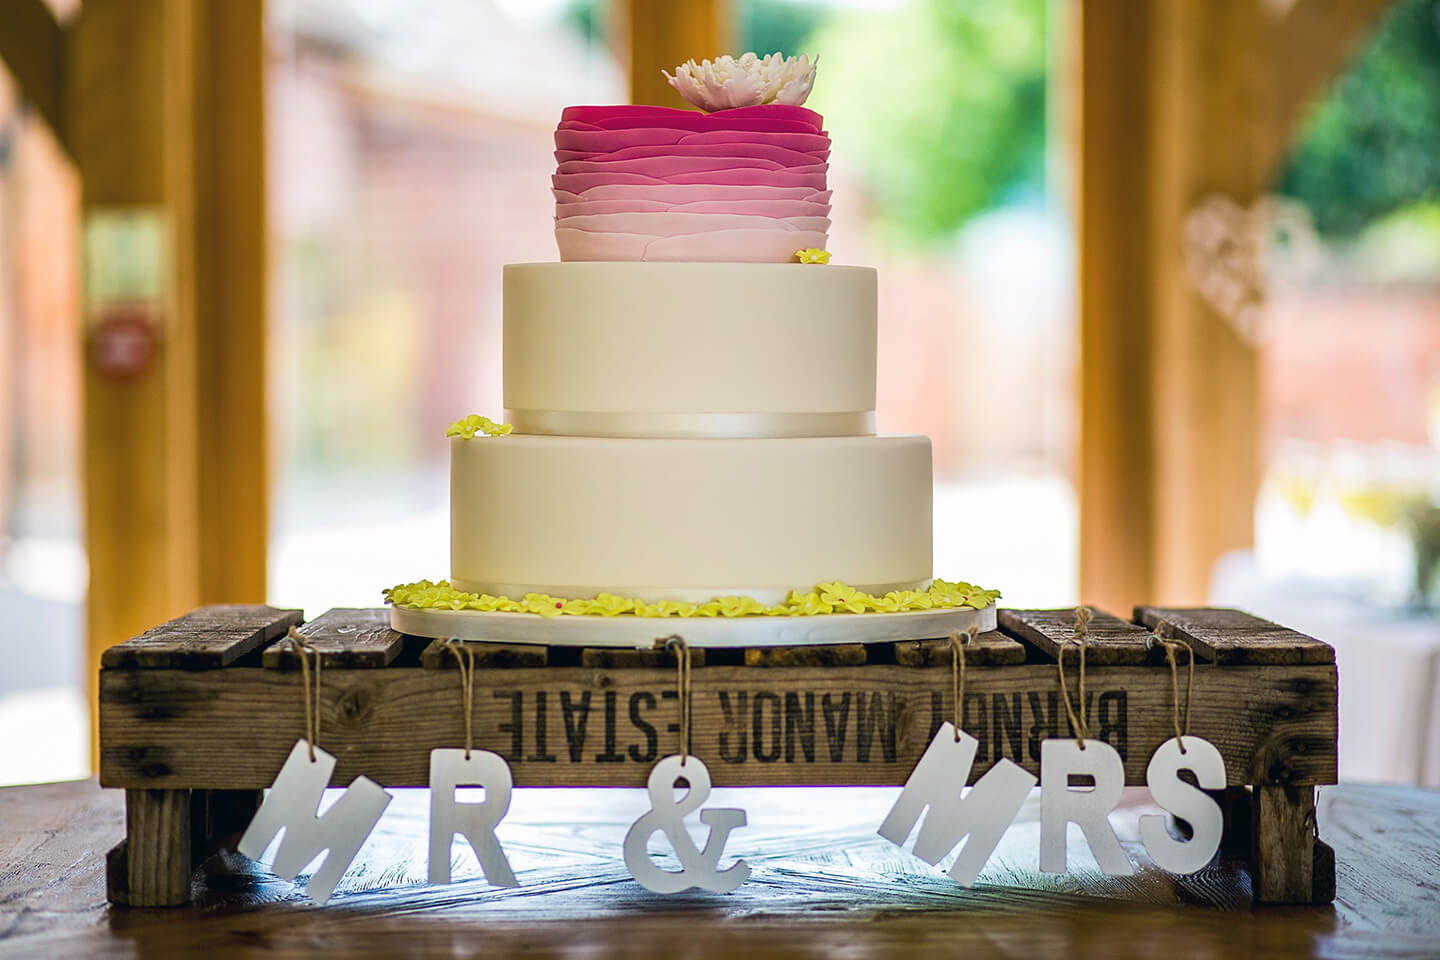 The couple had a three tier wedding cake with the top tier being ombre pink